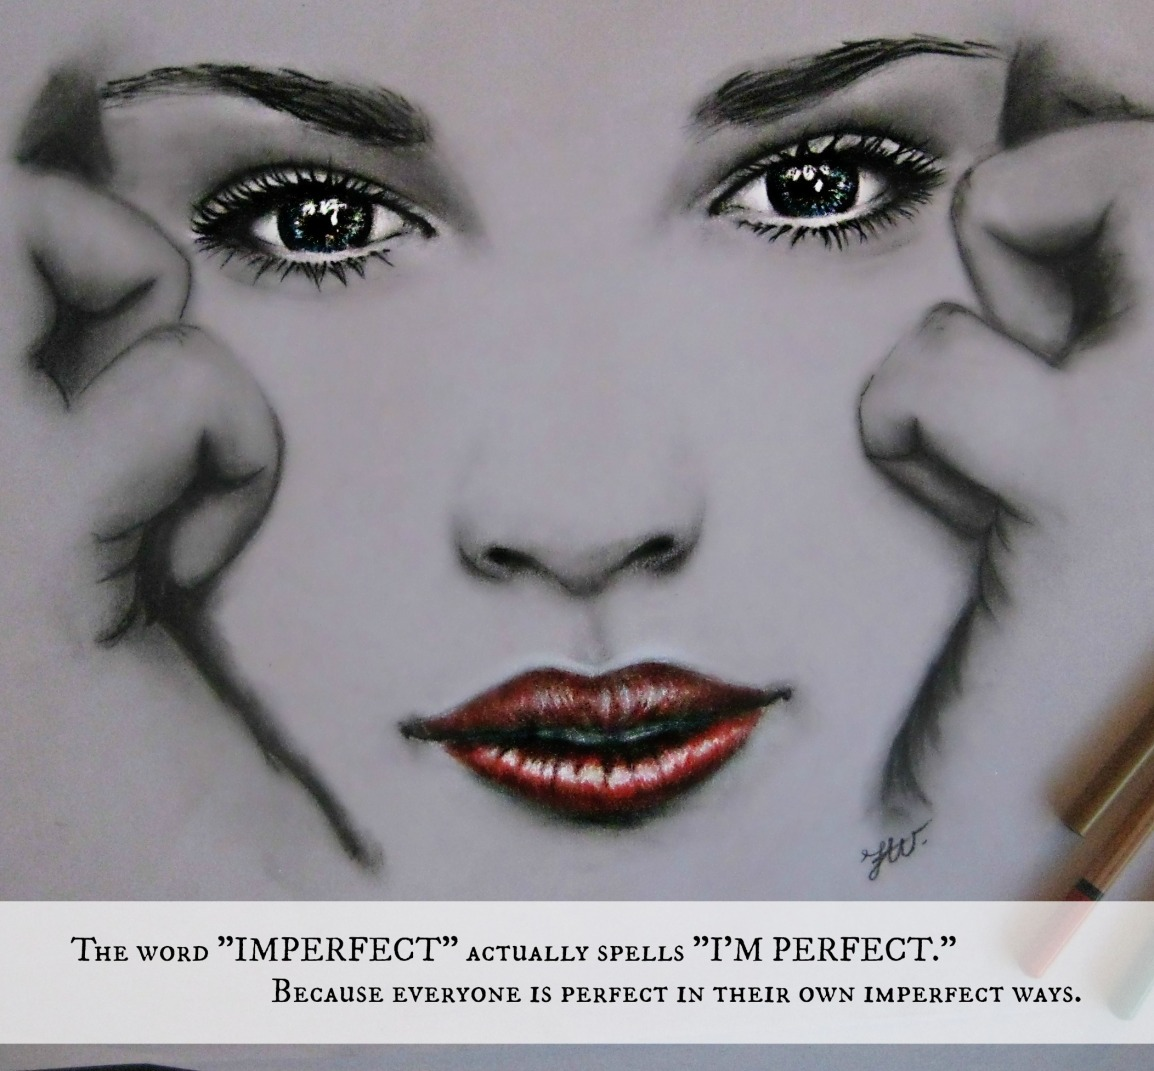 Perfect in their own imperfectways